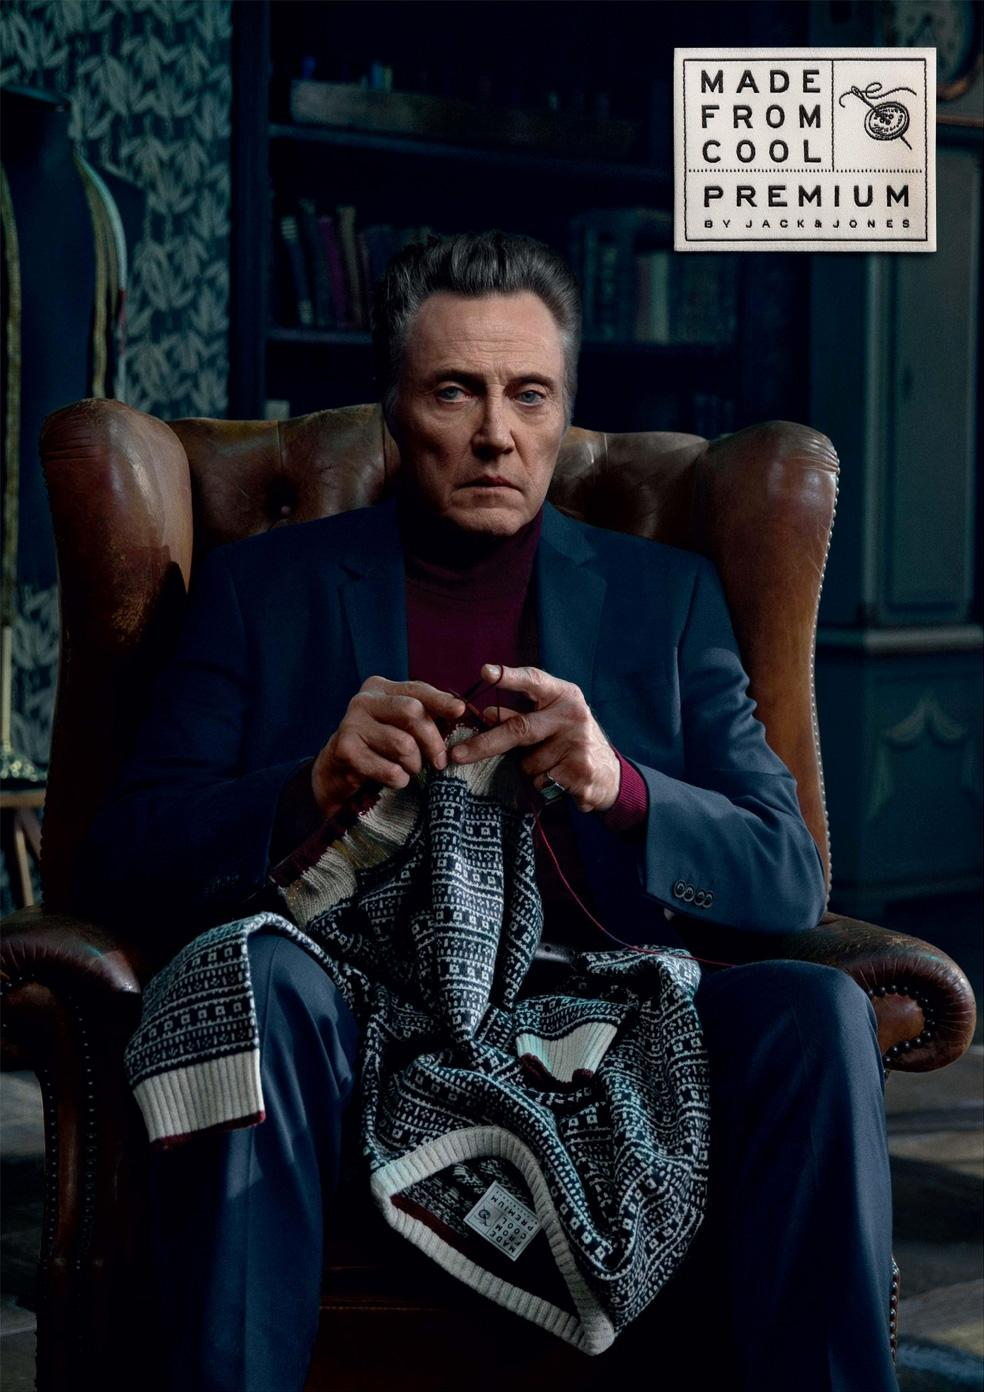 Jack & Jones Outdoor Ad -  Knit with wit